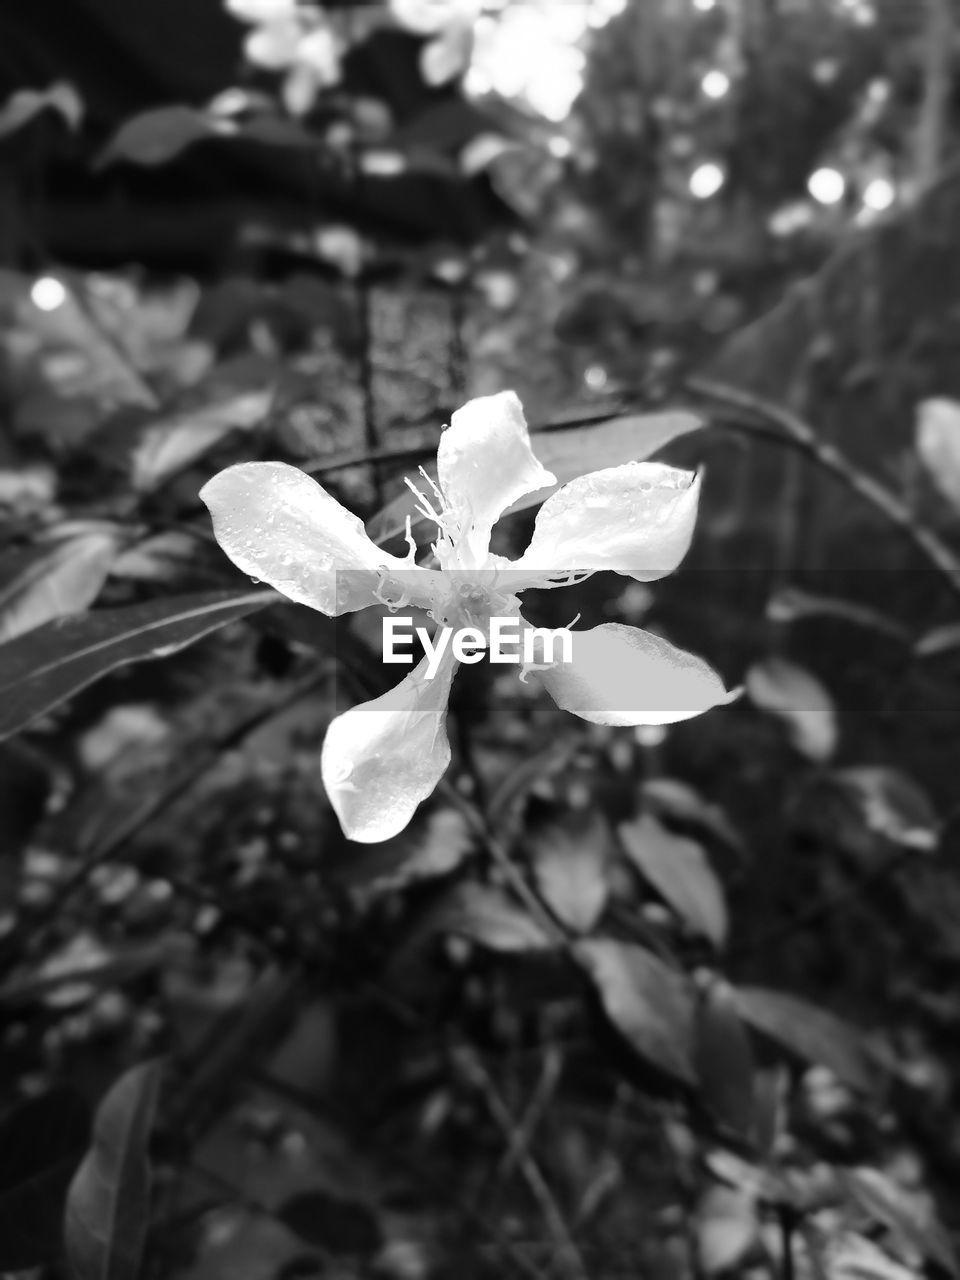 plant, growth, flowering plant, beauty in nature, flower, close-up, vulnerability, fragility, freshness, focus on foreground, petal, nature, inflorescence, no people, flower head, day, plant part, leaf, outdoors, white color